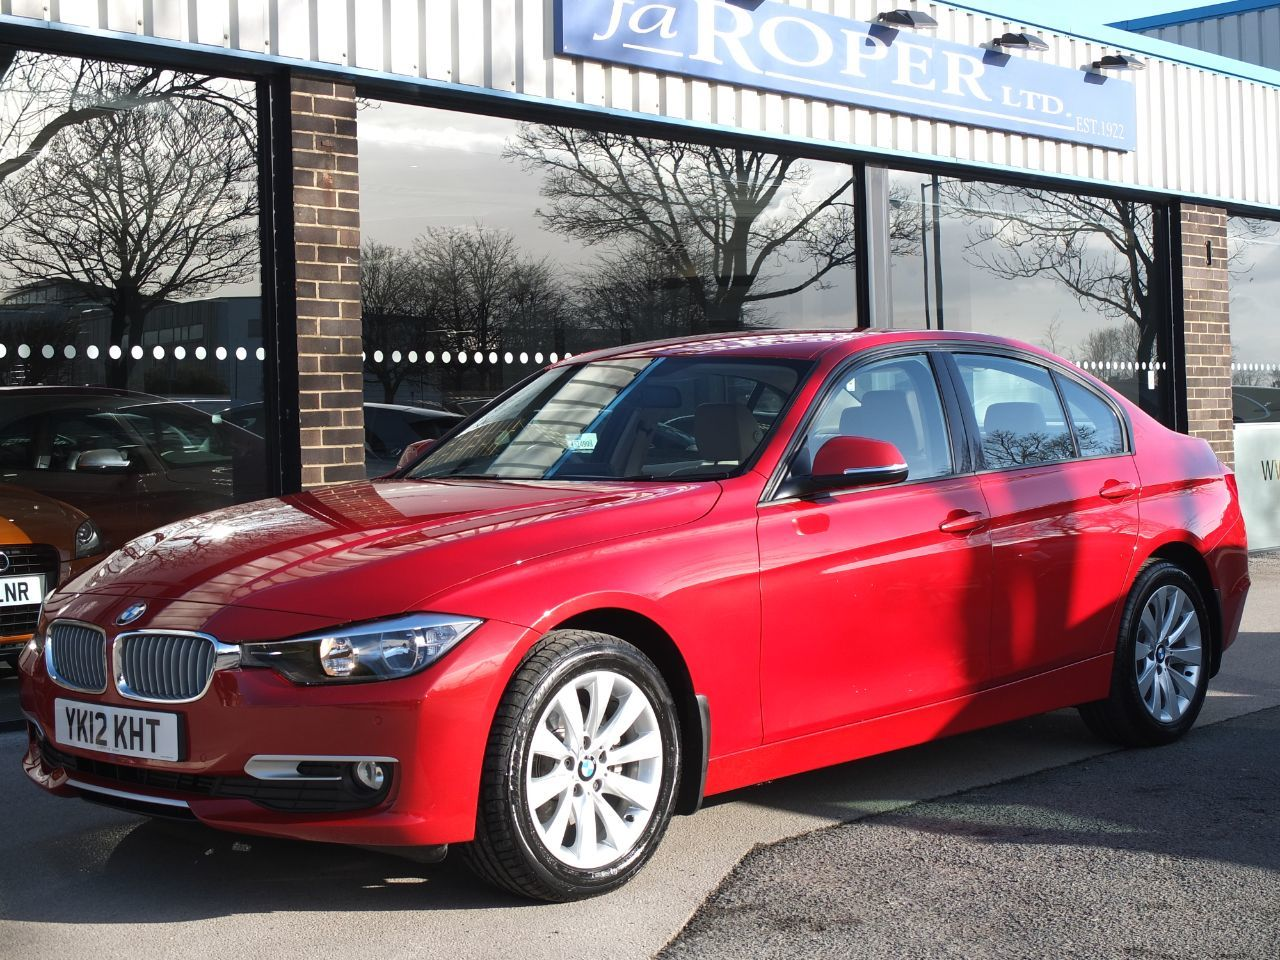 BMW 3 Series 320d Modern 2.0 ++Spec Saloon Diesel Melbourne Red MetallicBMW 3 Series 320d Modern 2.0 ++Spec Saloon Diesel Melbourne Red Metallic at fa Roper Ltd Bradford